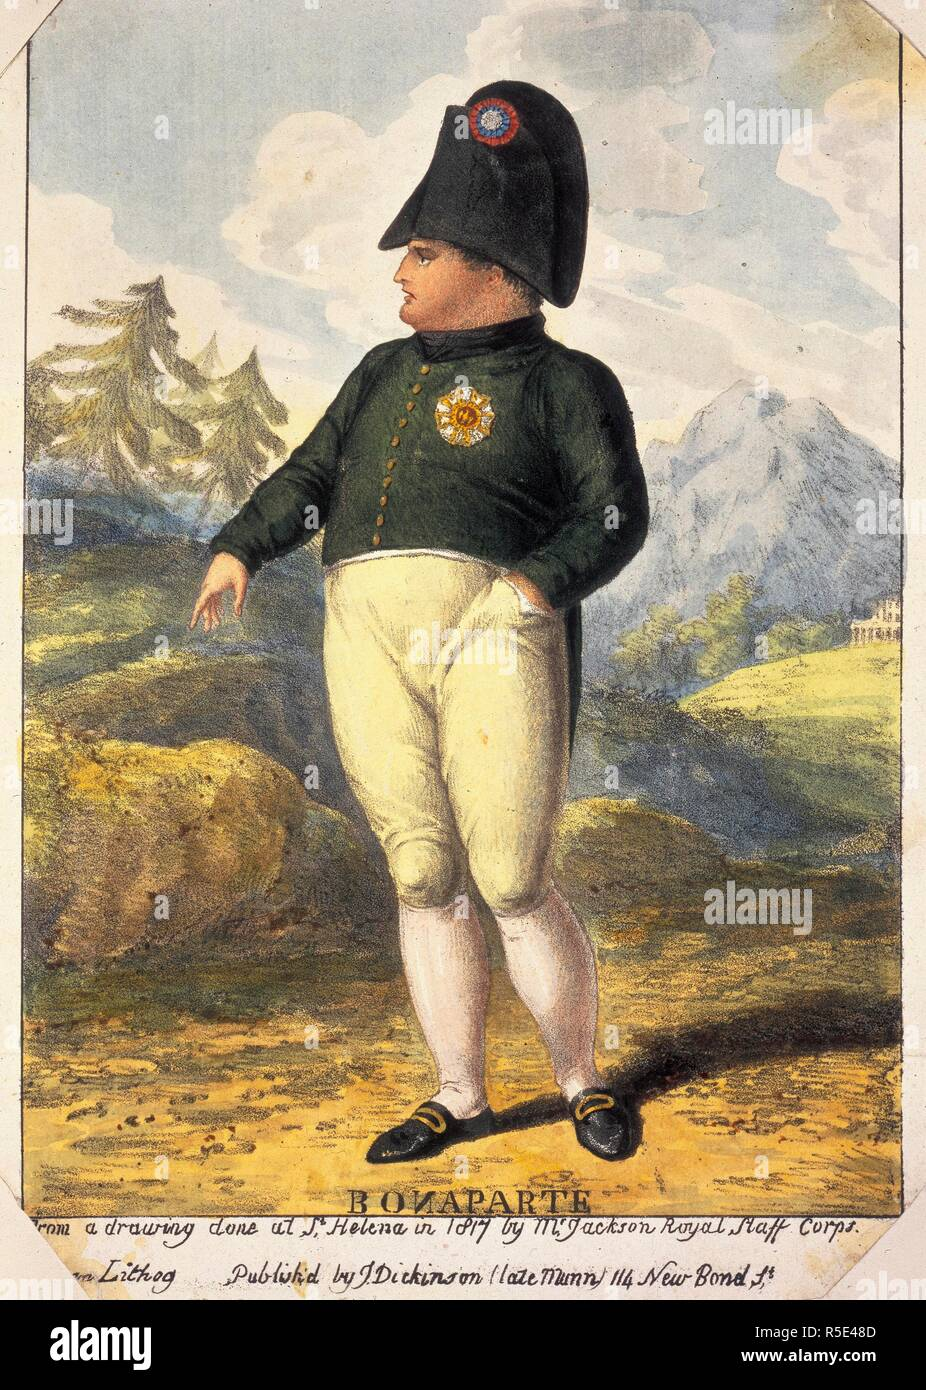 Napoleon Bonaparte. A St. Helena Who's Who ... Extra-illustrated with over two hundred portraits and views, collected, arranged and inlaid by the author and his wife, Margaret Douie Chaplin. London, 1922. Source: L.R.305.a.9, opposite IX. Language: English. - Stock Image